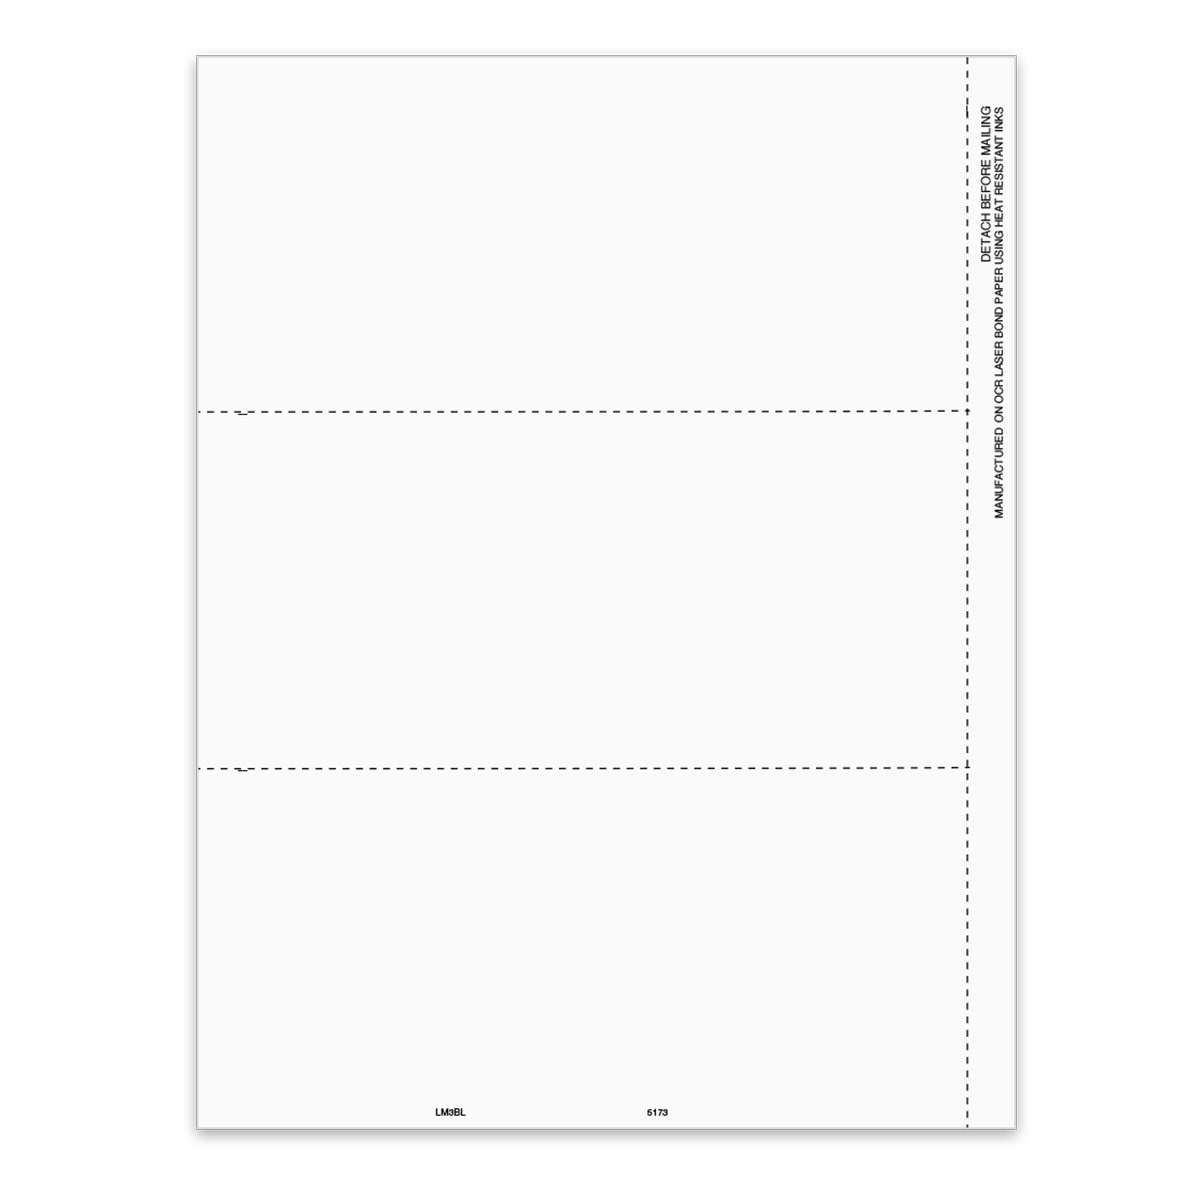 Blank 1099-MISC Form 3-Up Perf - 5173